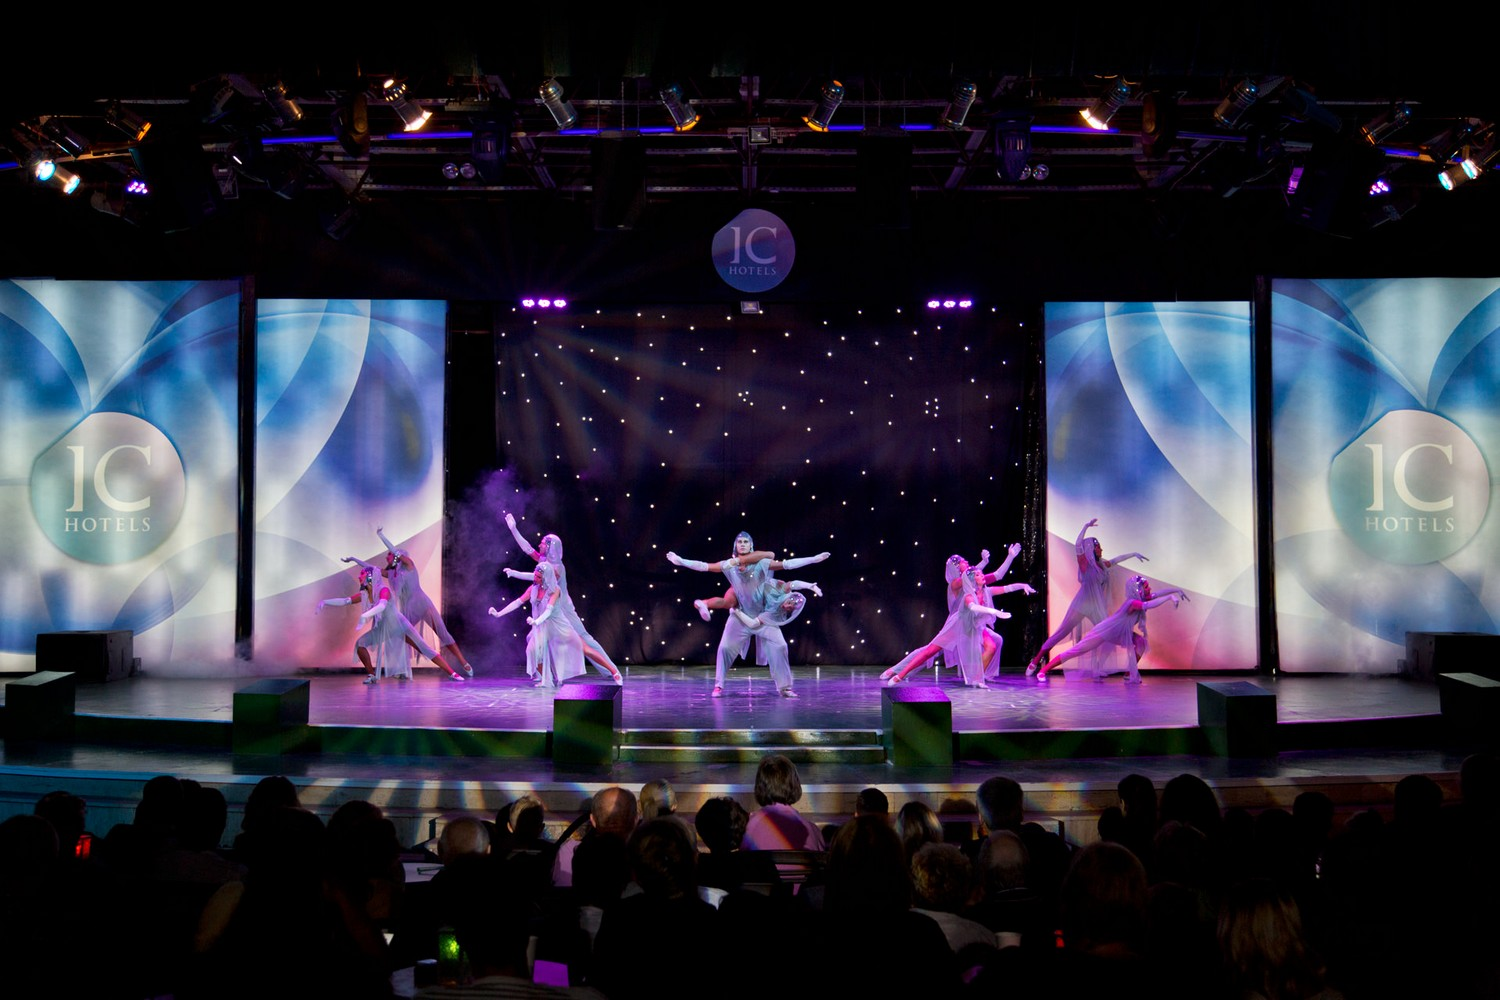 ic_hotels_green_palace_evening_show_13.jpg